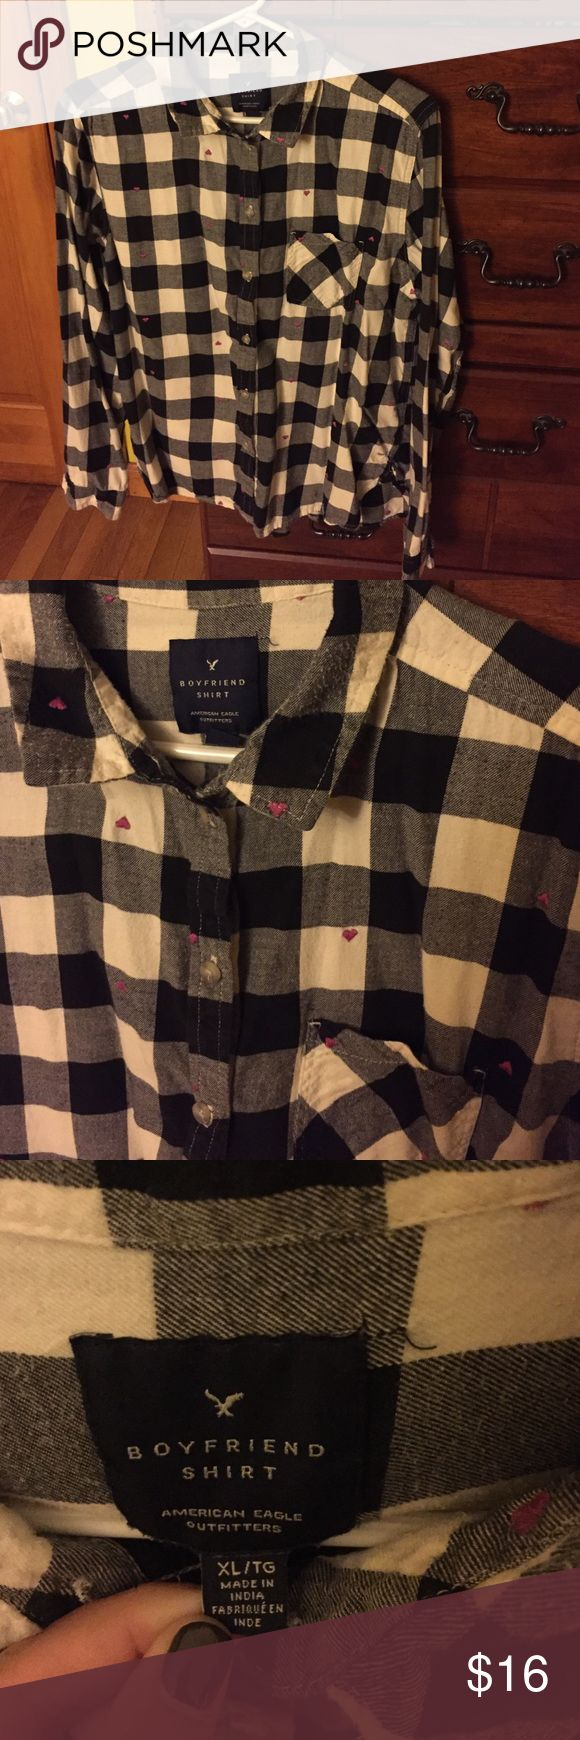 Women's flannel shirt Black and white flannel short with little hearts on it. It's a boyfriend fit American Eagle Outfitters Tops Button Down Shirts